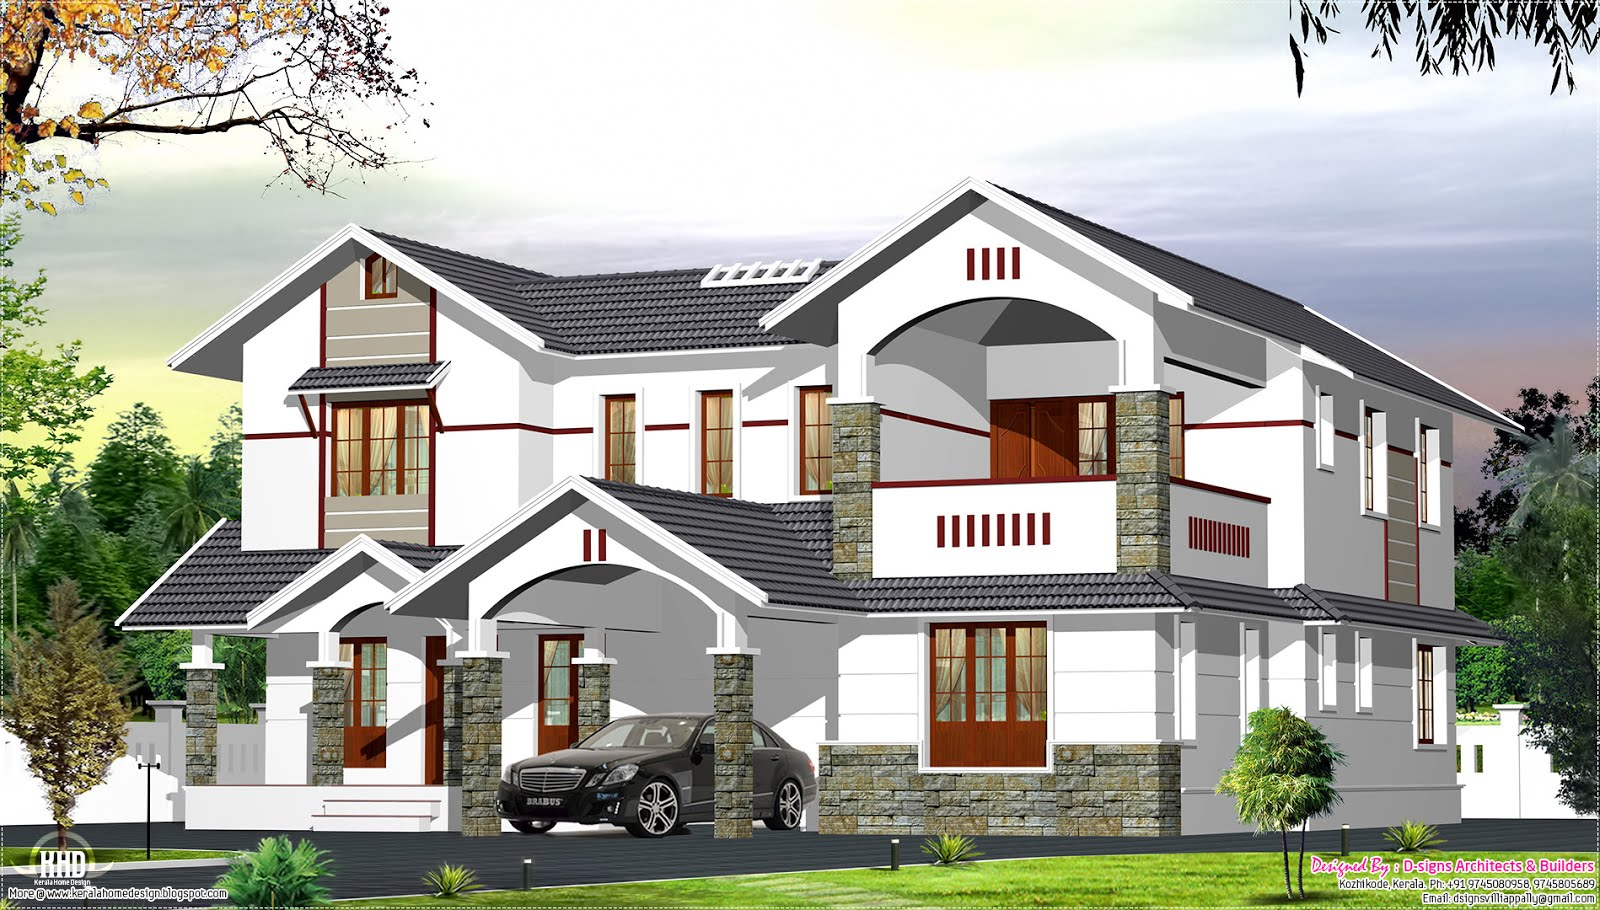 1600 Sq Ft. House Plans